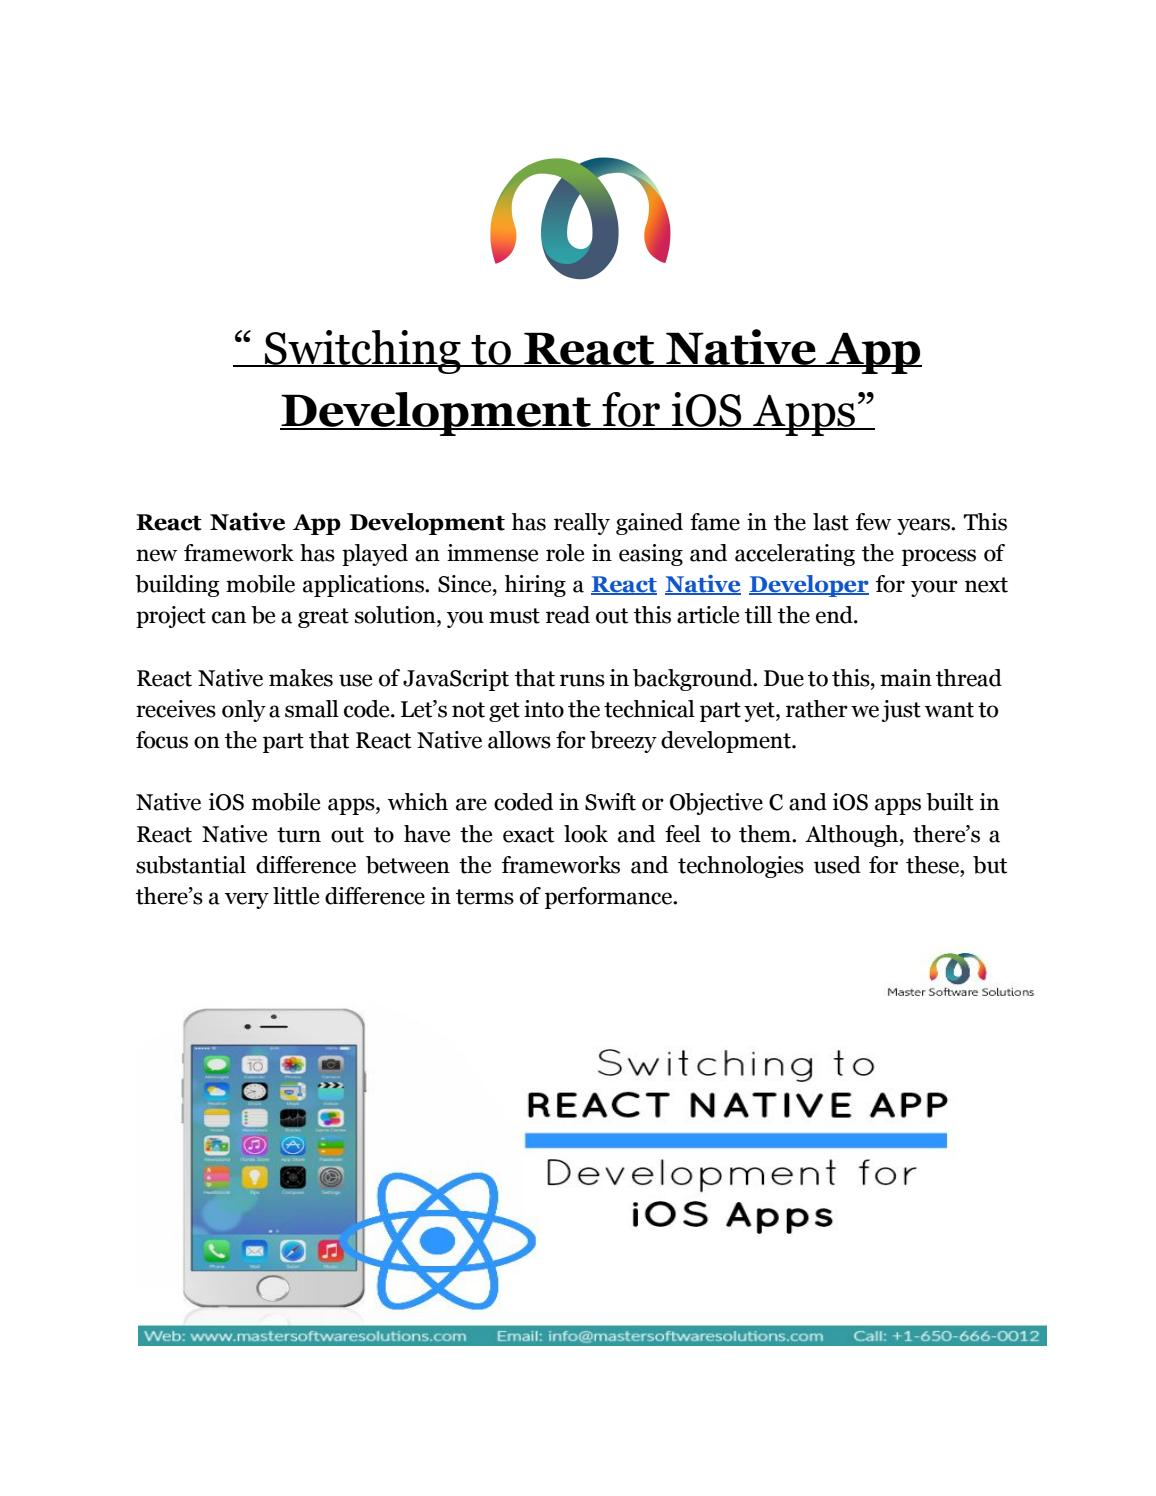 React native app development by Master Software Solutions